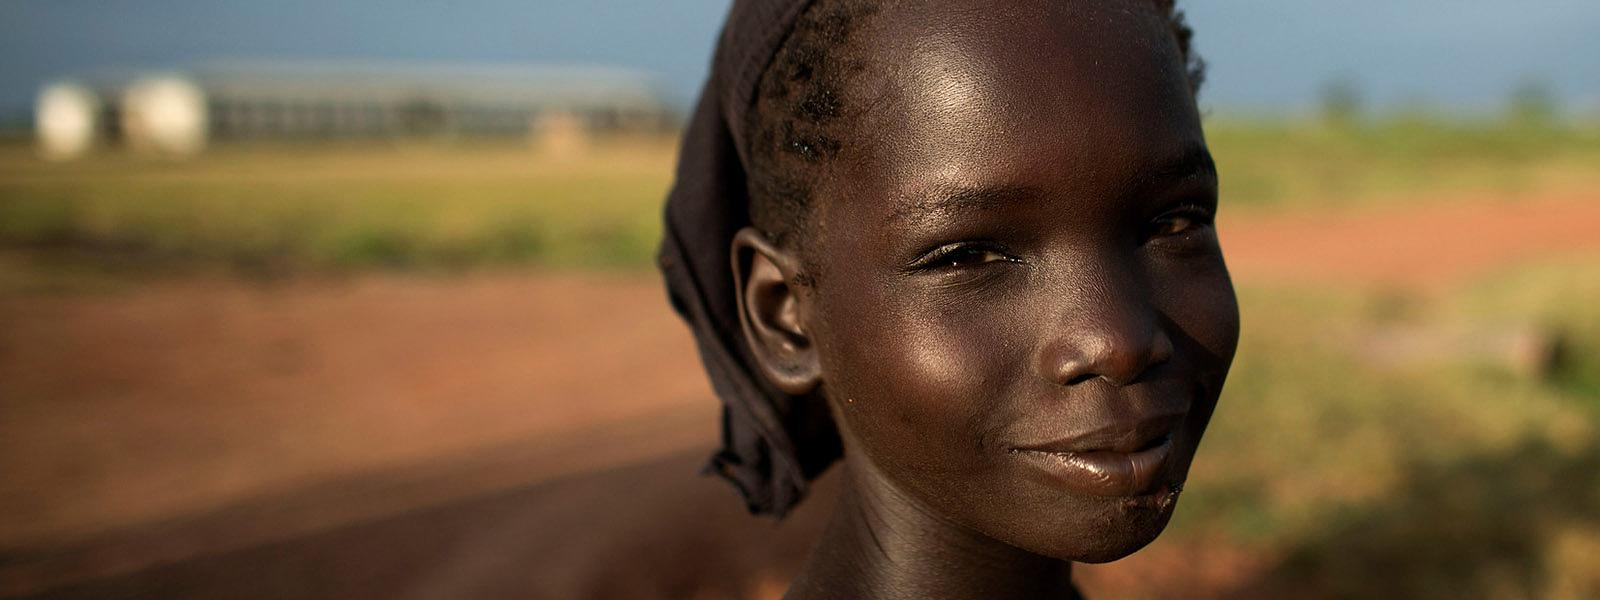 a young girl in smiling for the camera